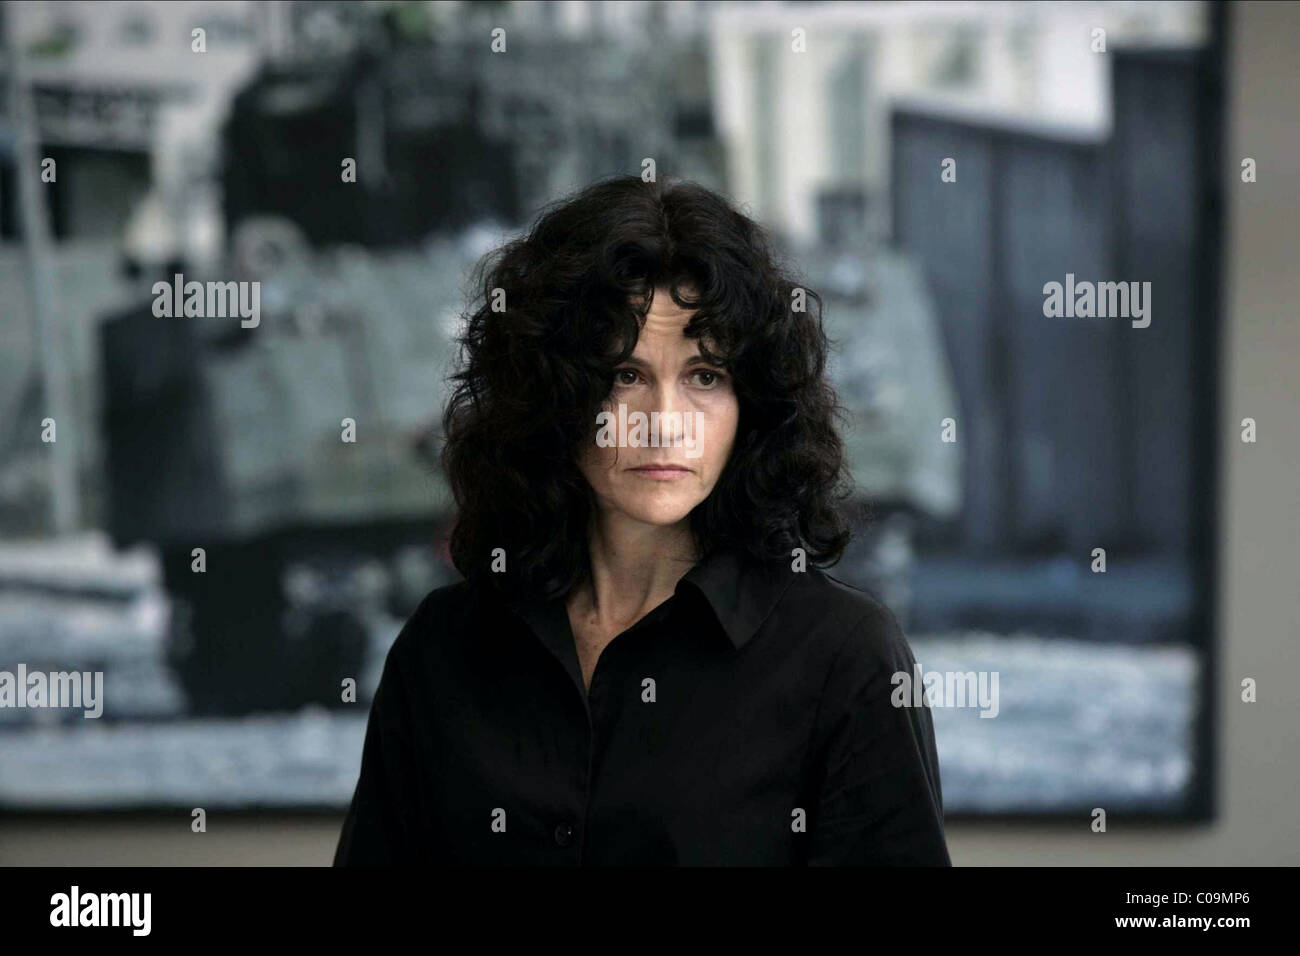 ALLY SHEEDY LIFE DURING WARTIME (2009) - Stock Image